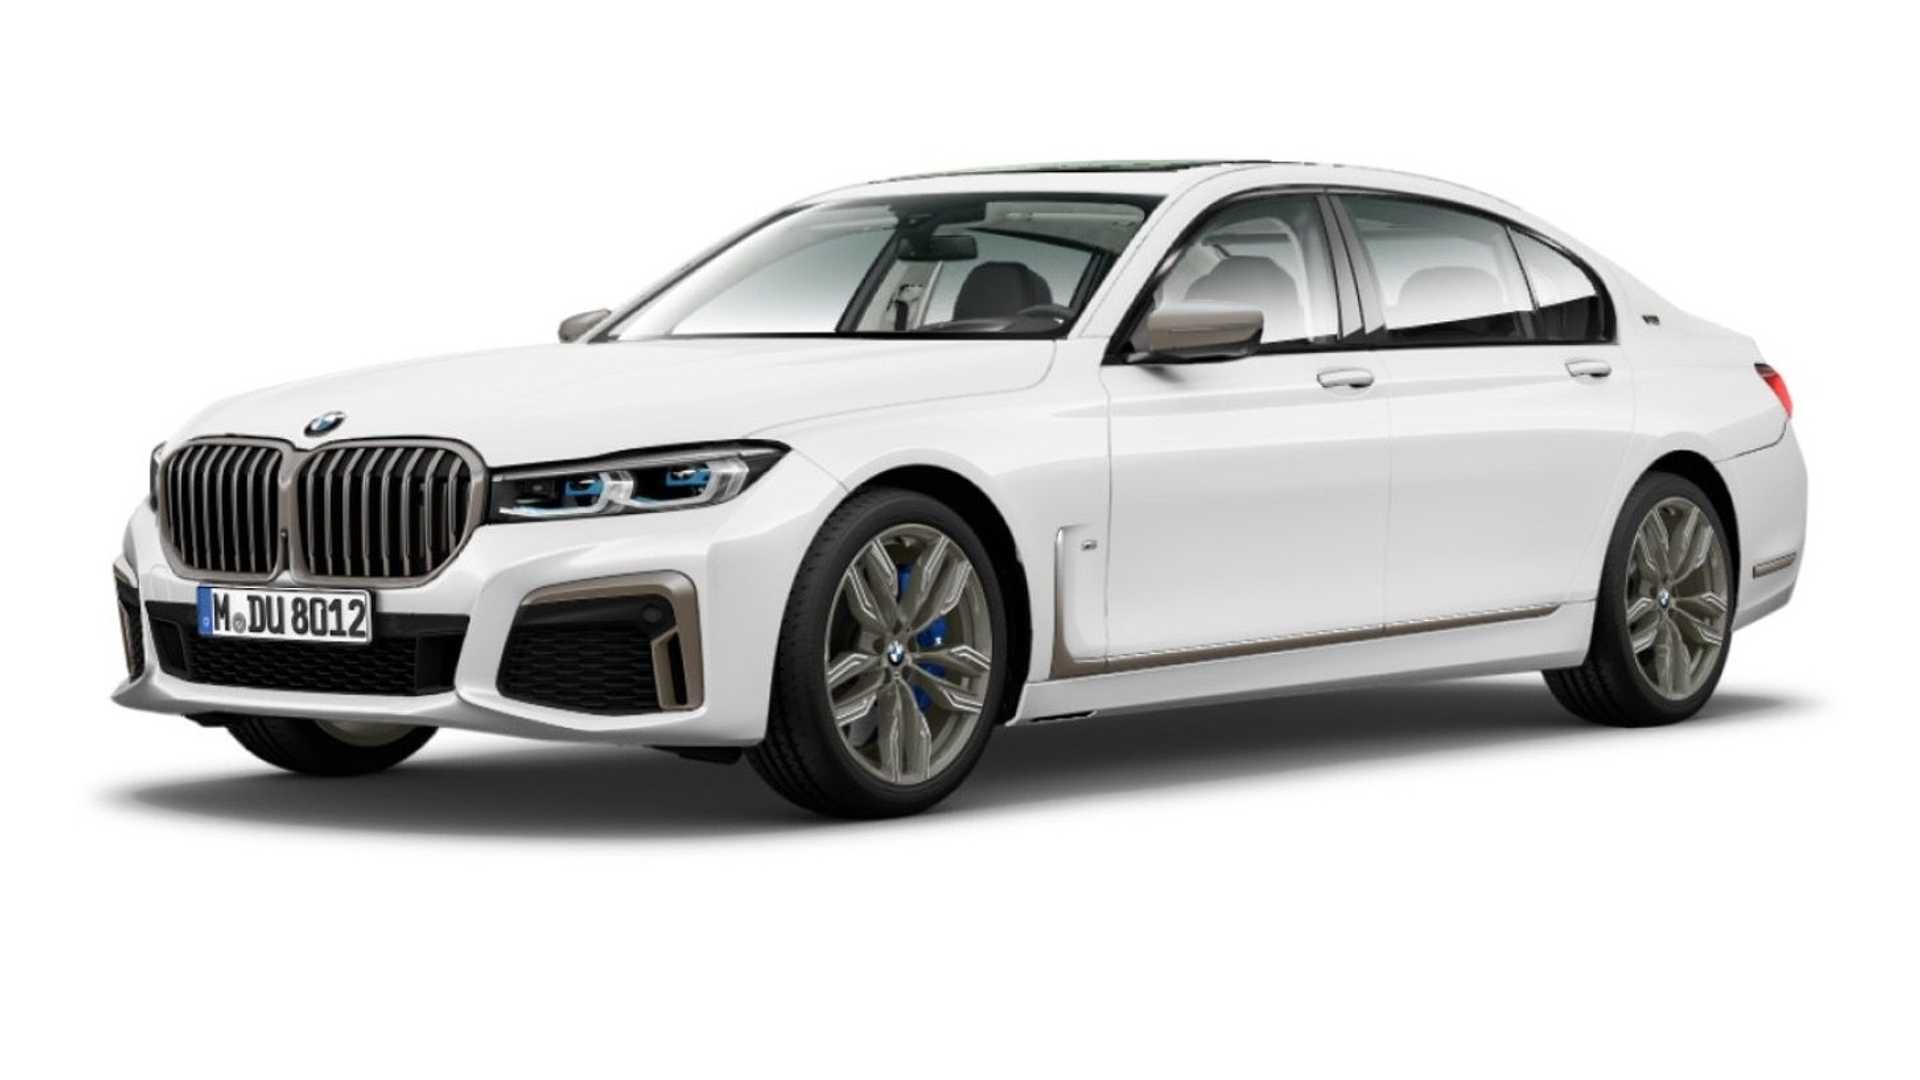 BMW 7 Series facelift 2019 leaked official images (1)